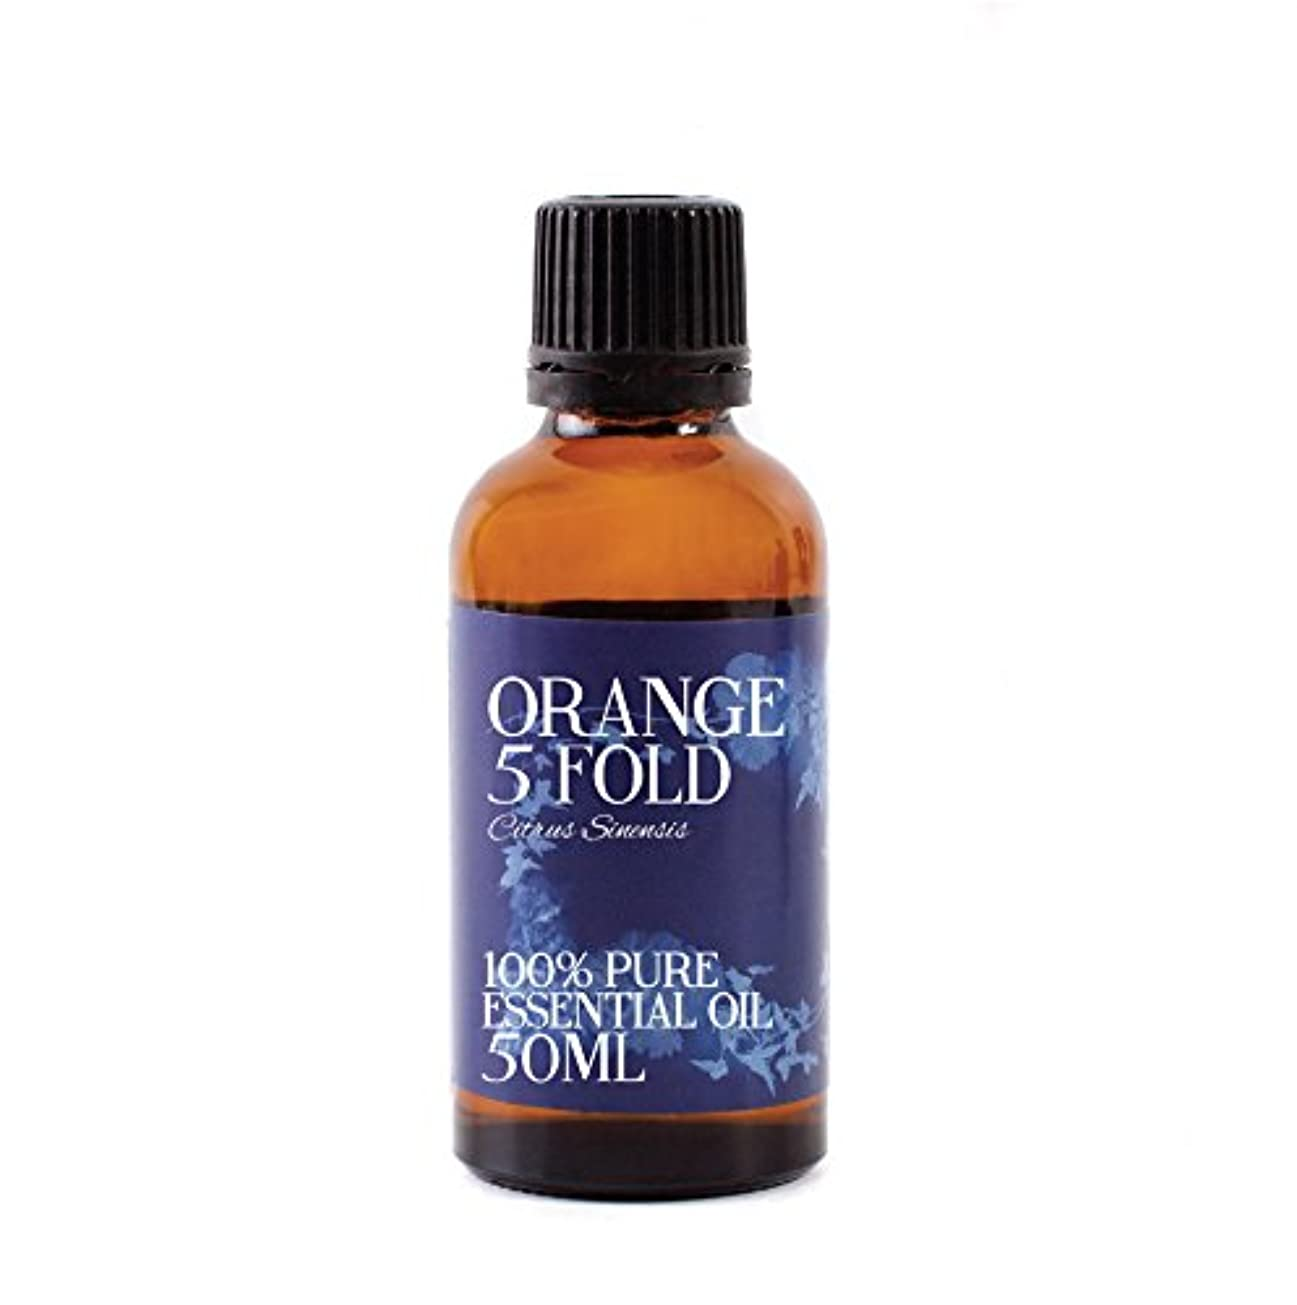 二年生カフェ相談Mystic Moments | Orange 5 Fold Essential Oil - 50ml - 100% Pure